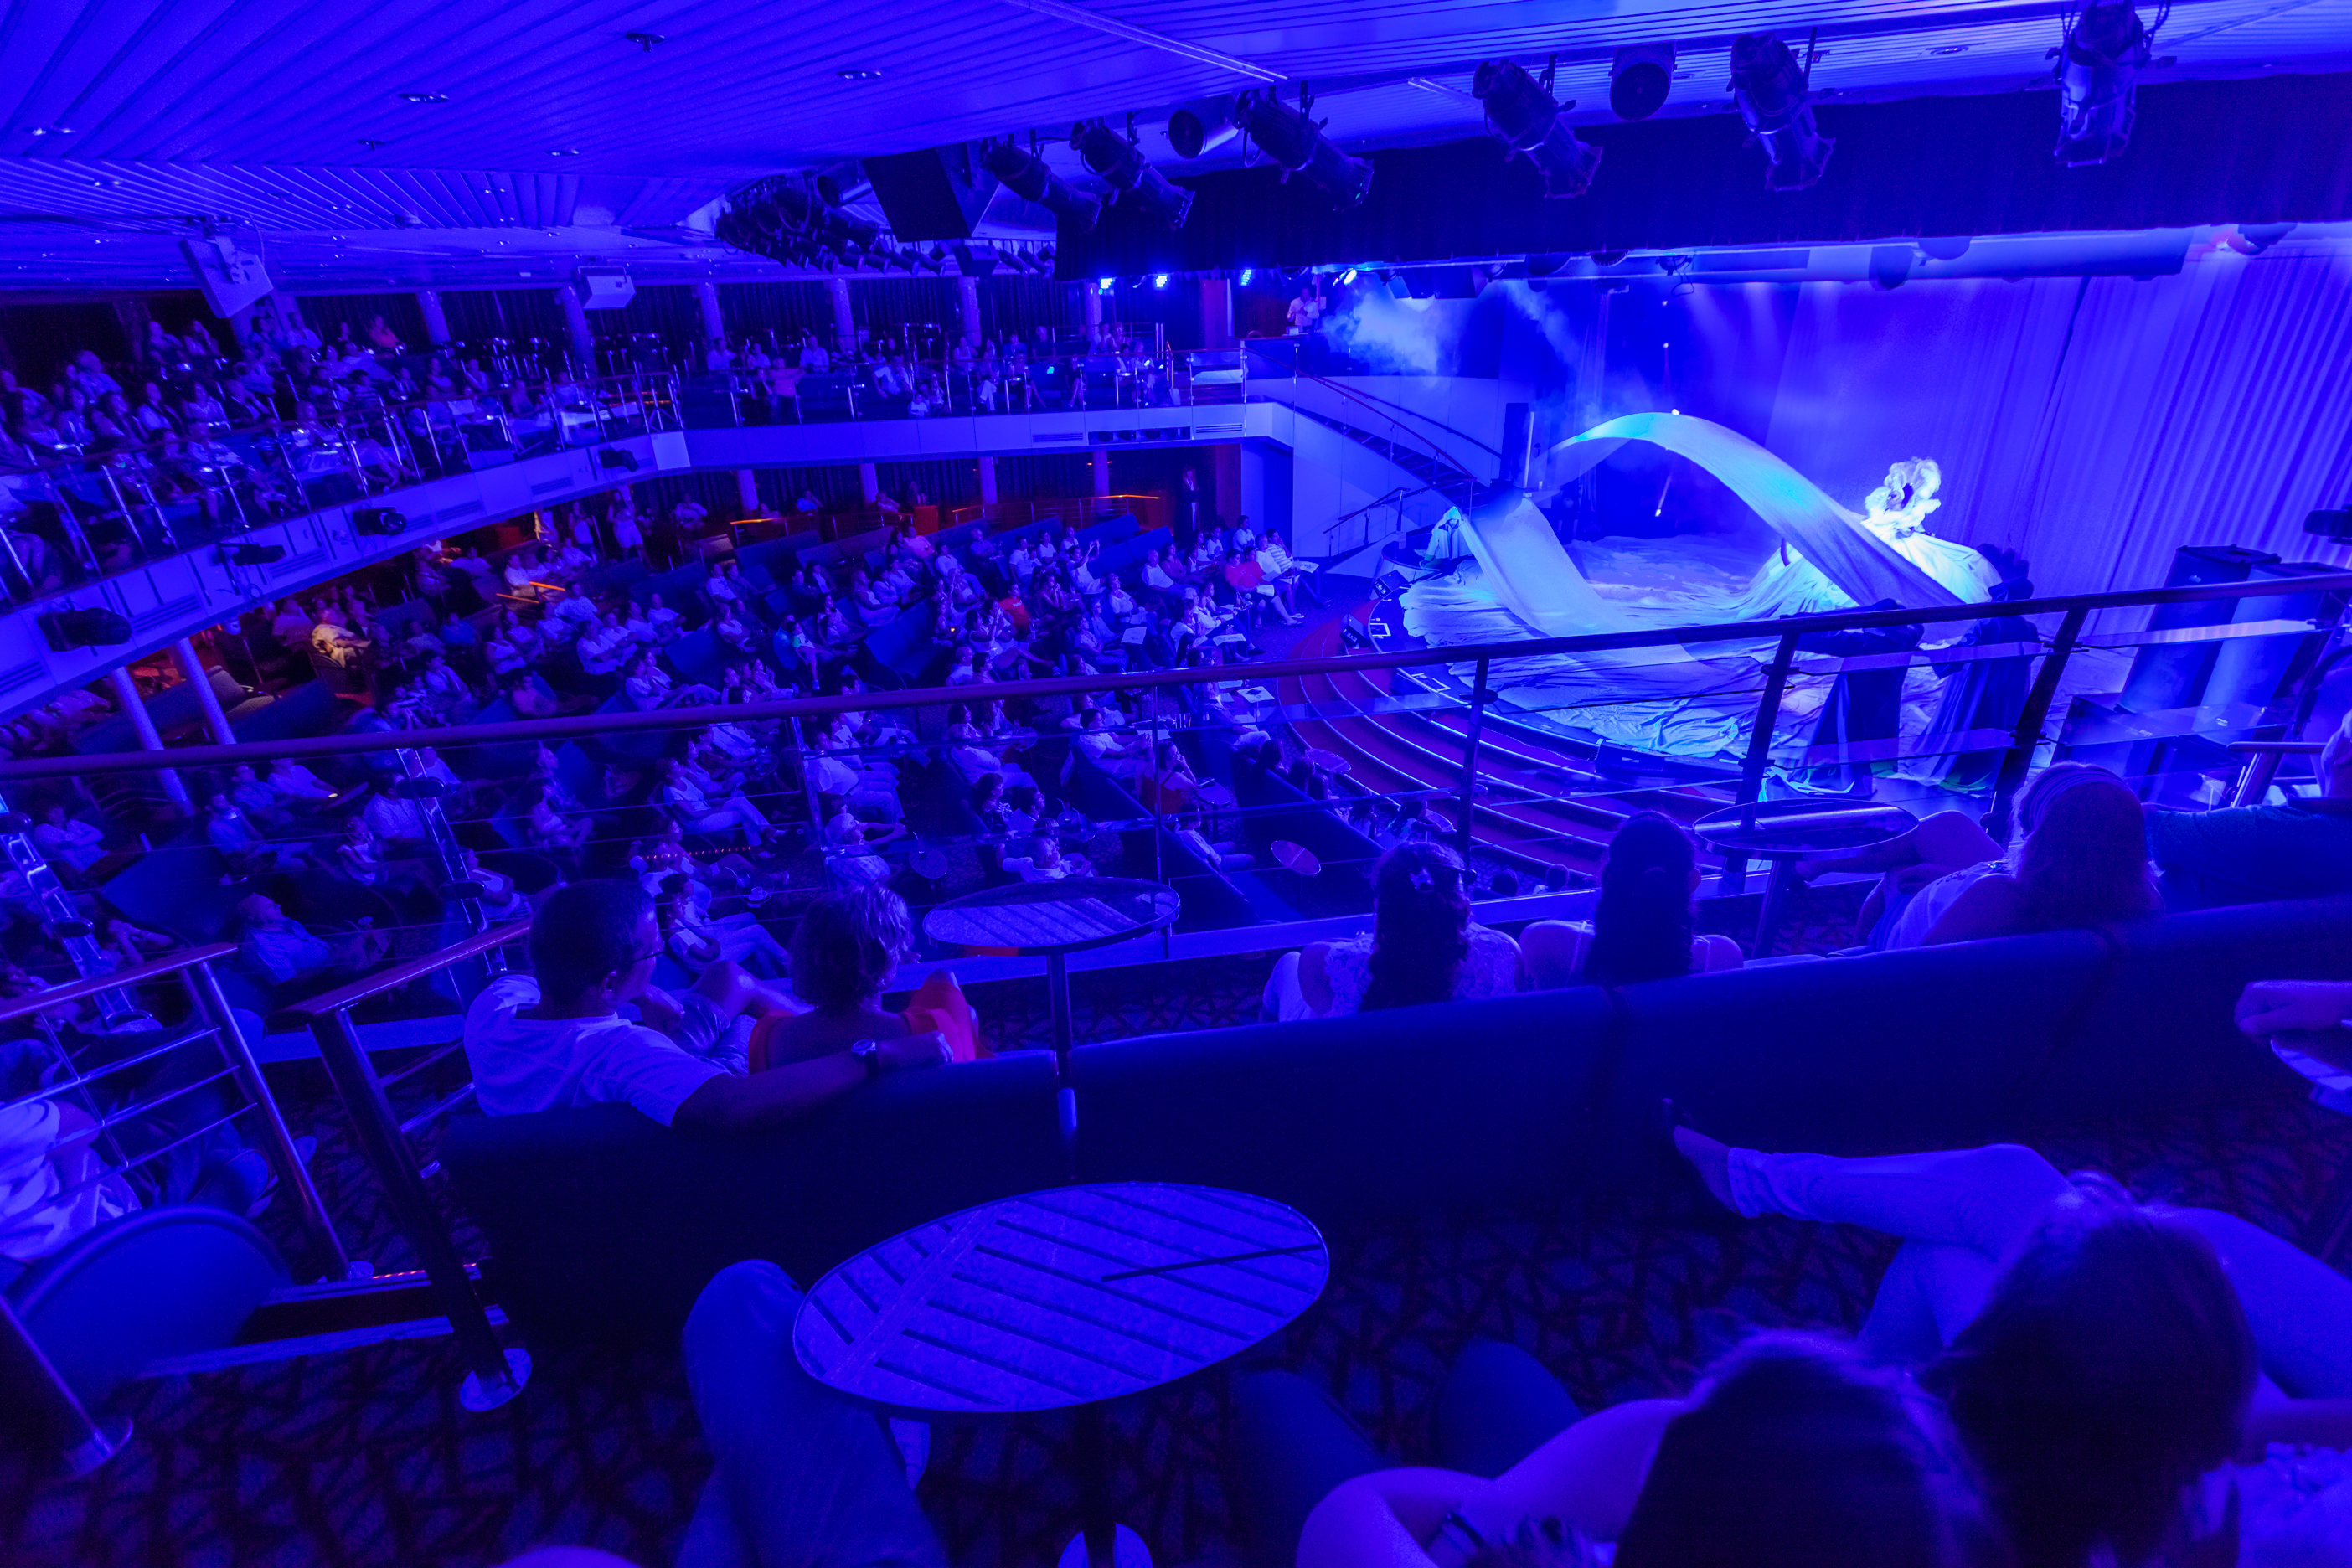 Pullmantur Zenith Interior Broadway Show Lounge Entertainment.jpg